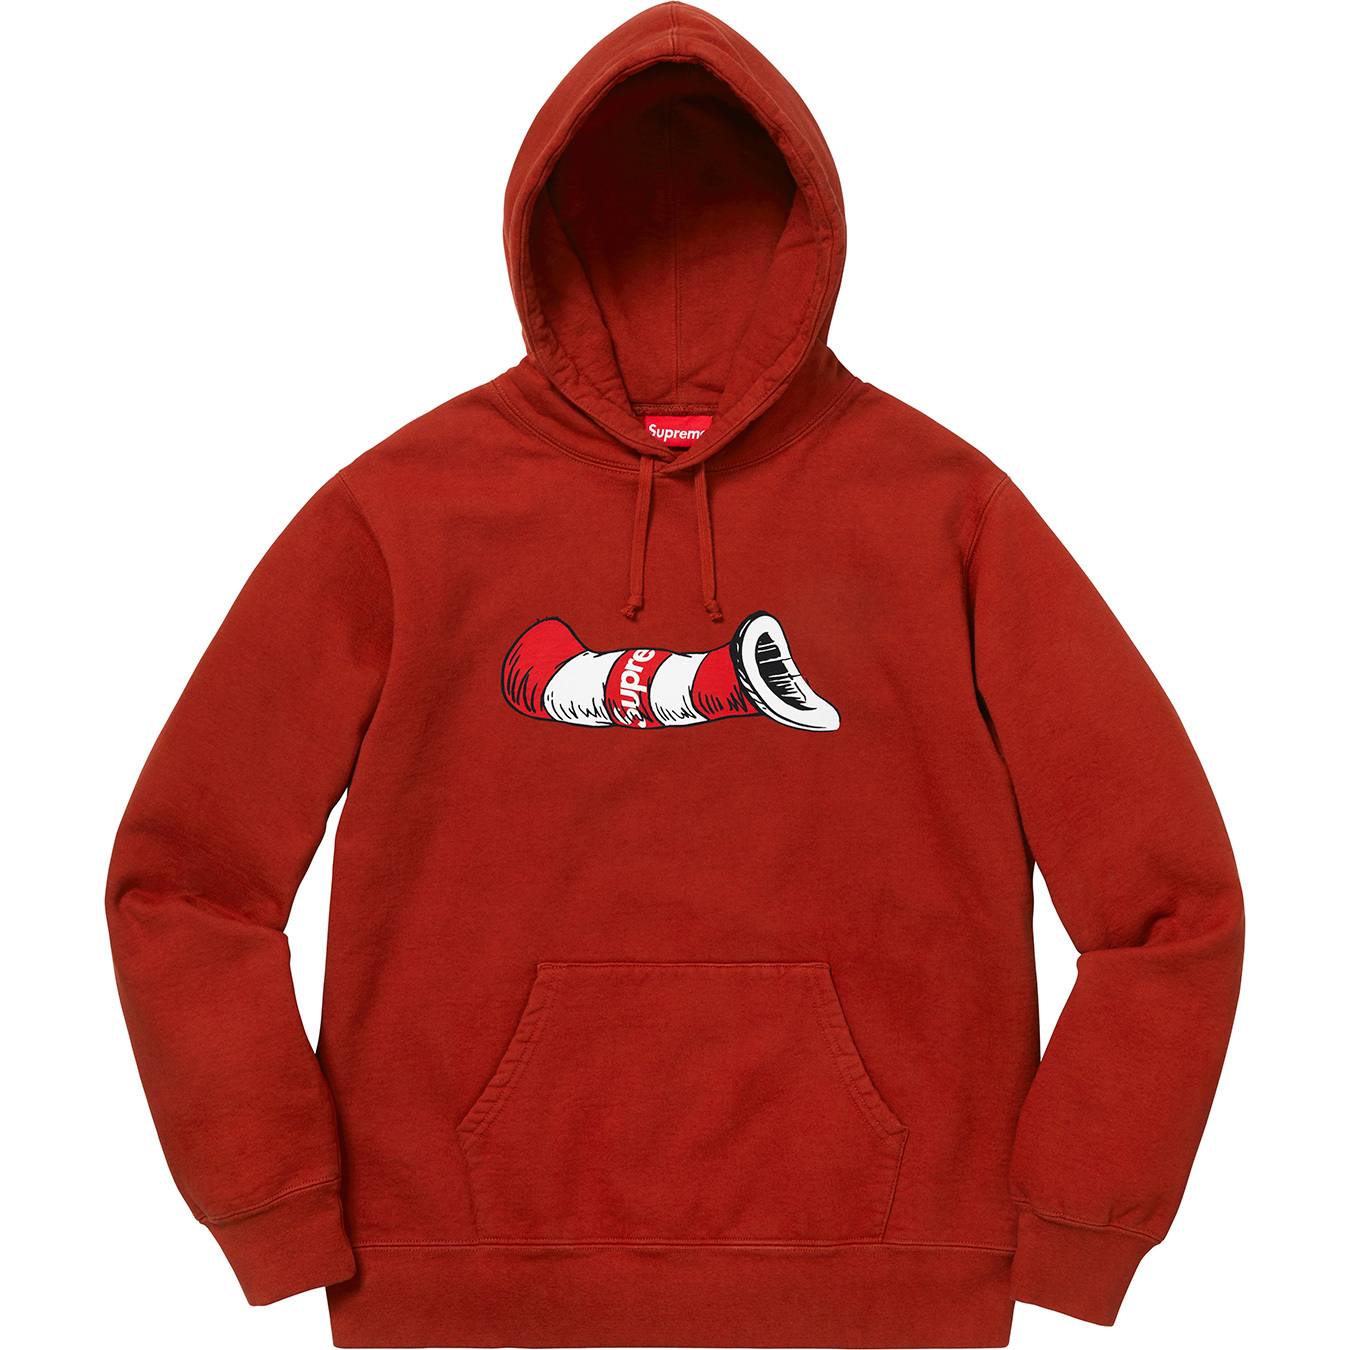 supreme-18aw-fall-winter-cat-in-the-hat-hooded-sweatshirt